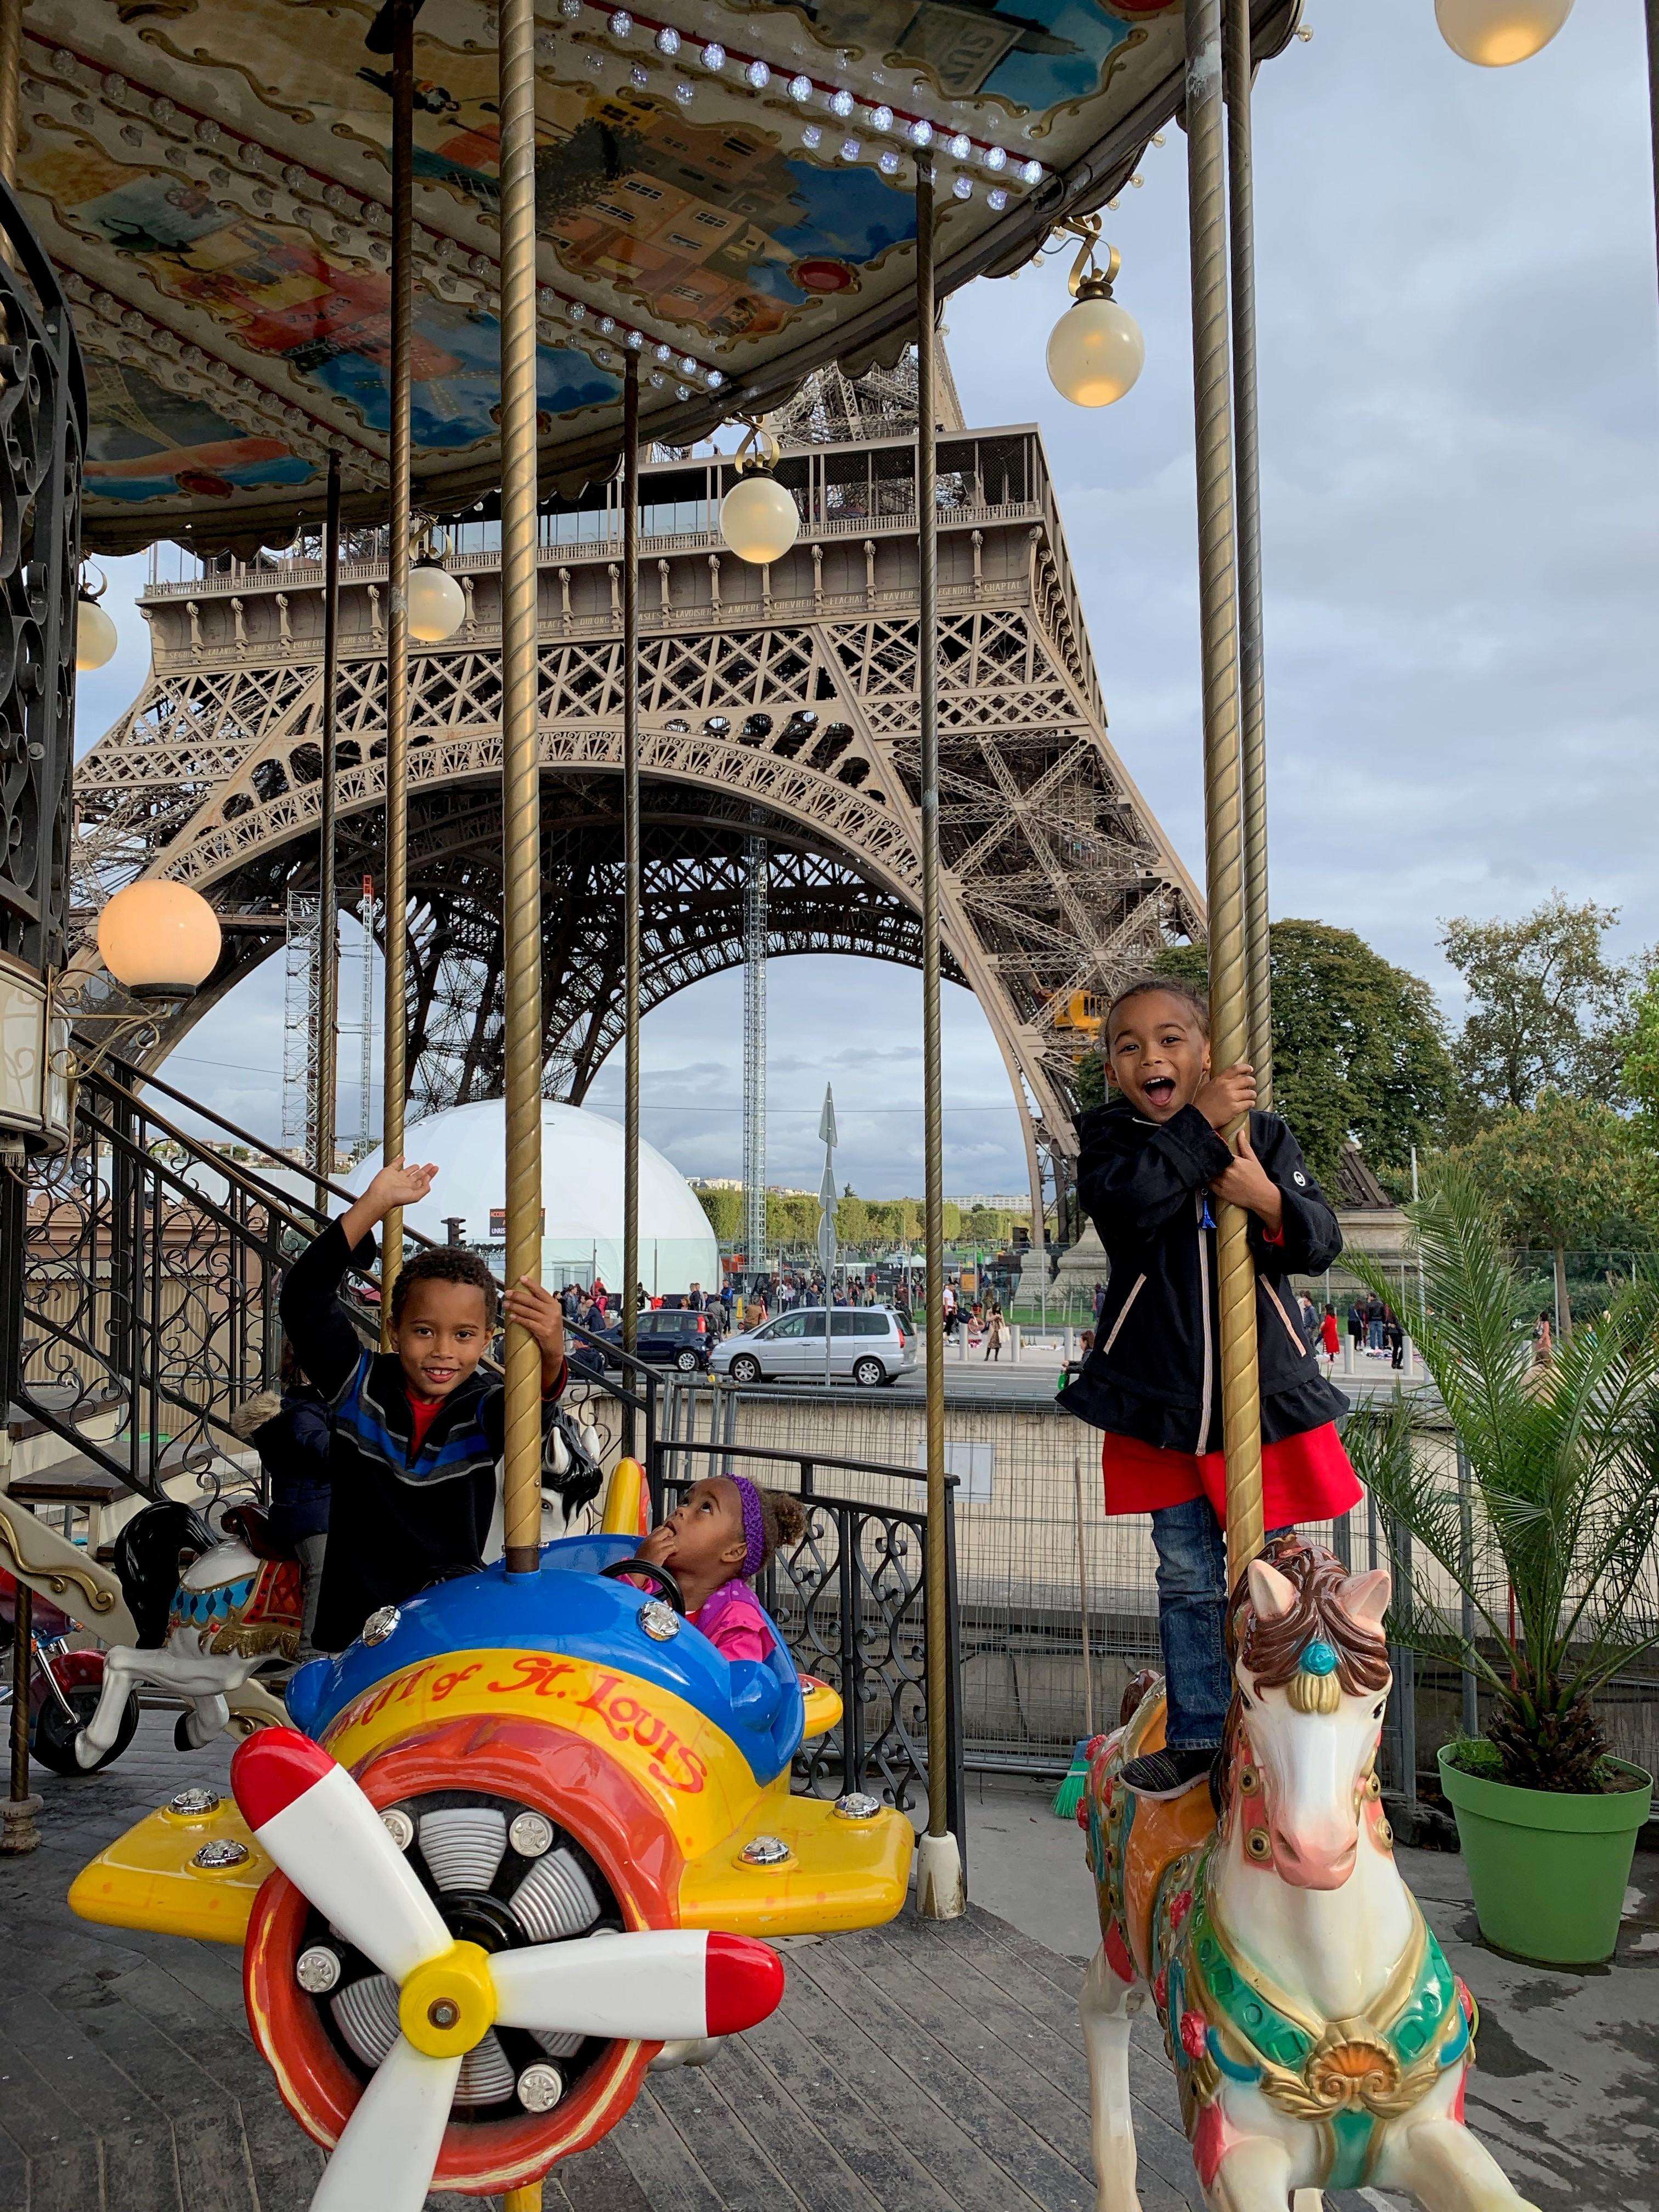 """A carousel at the foot of the Eiffel Tower - """"Bonjour!"""""""